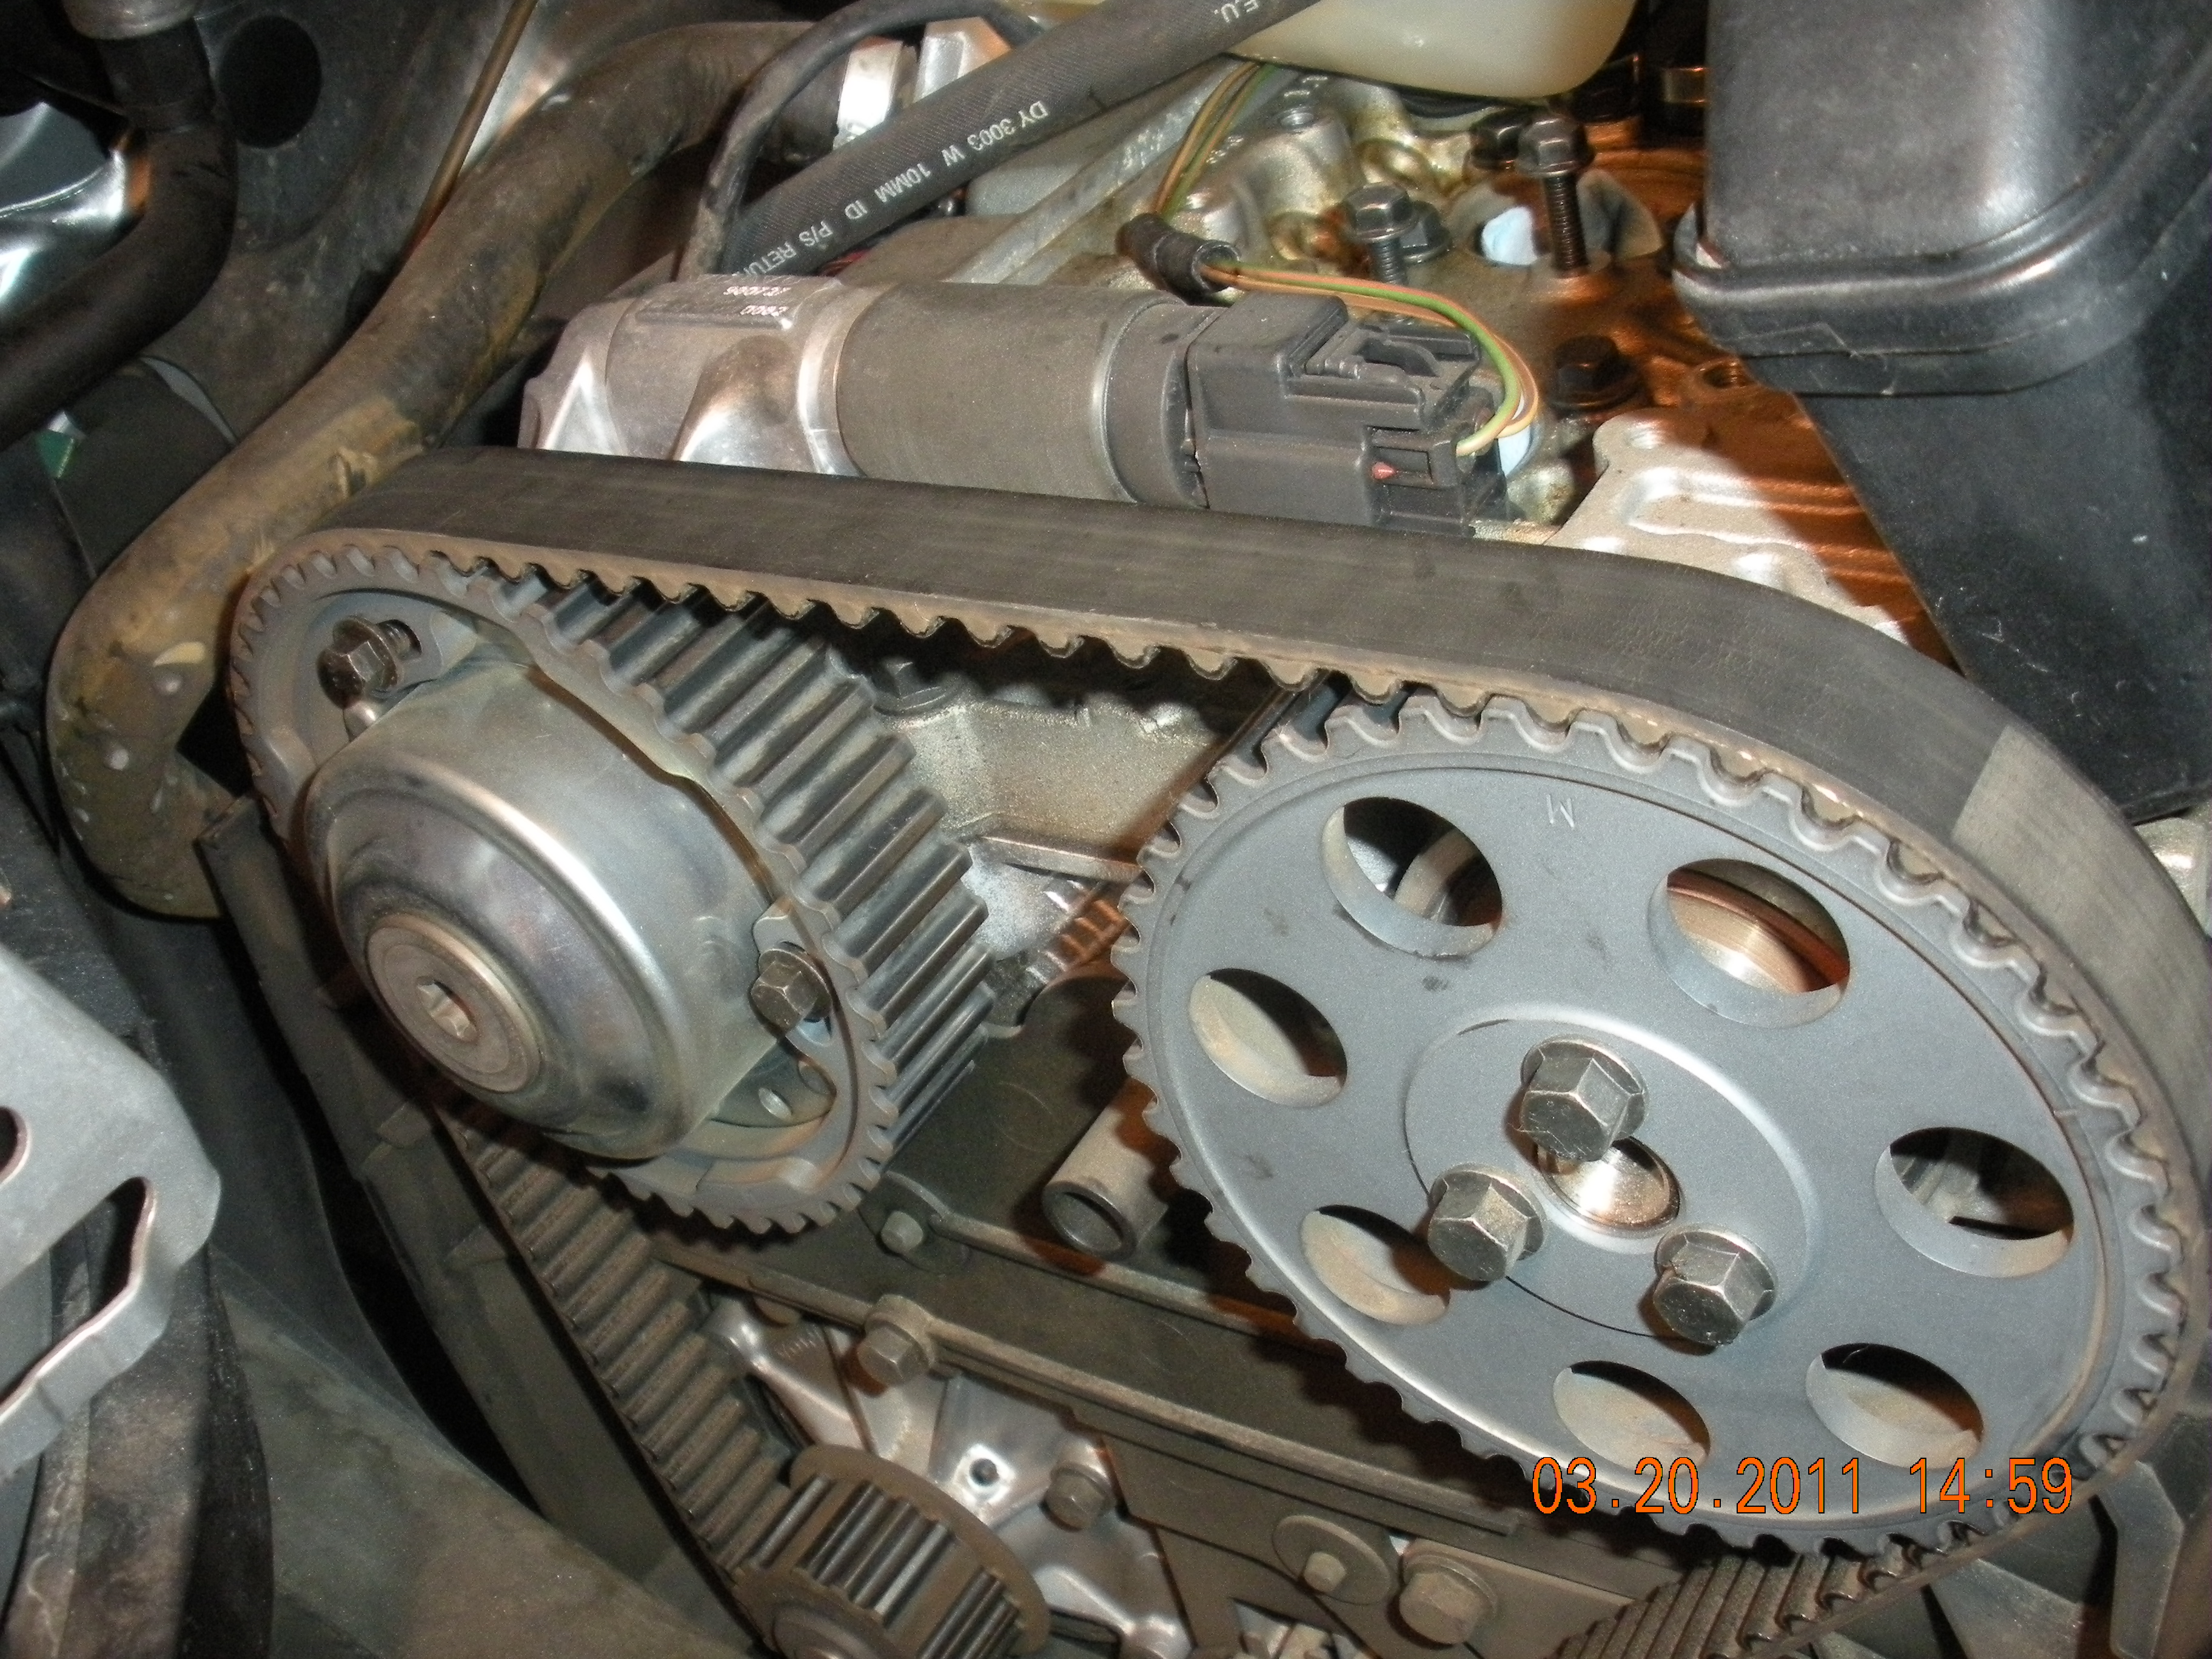 Timing belt and water pump = MISERABLE SEVEN HOUR ORDEAL!